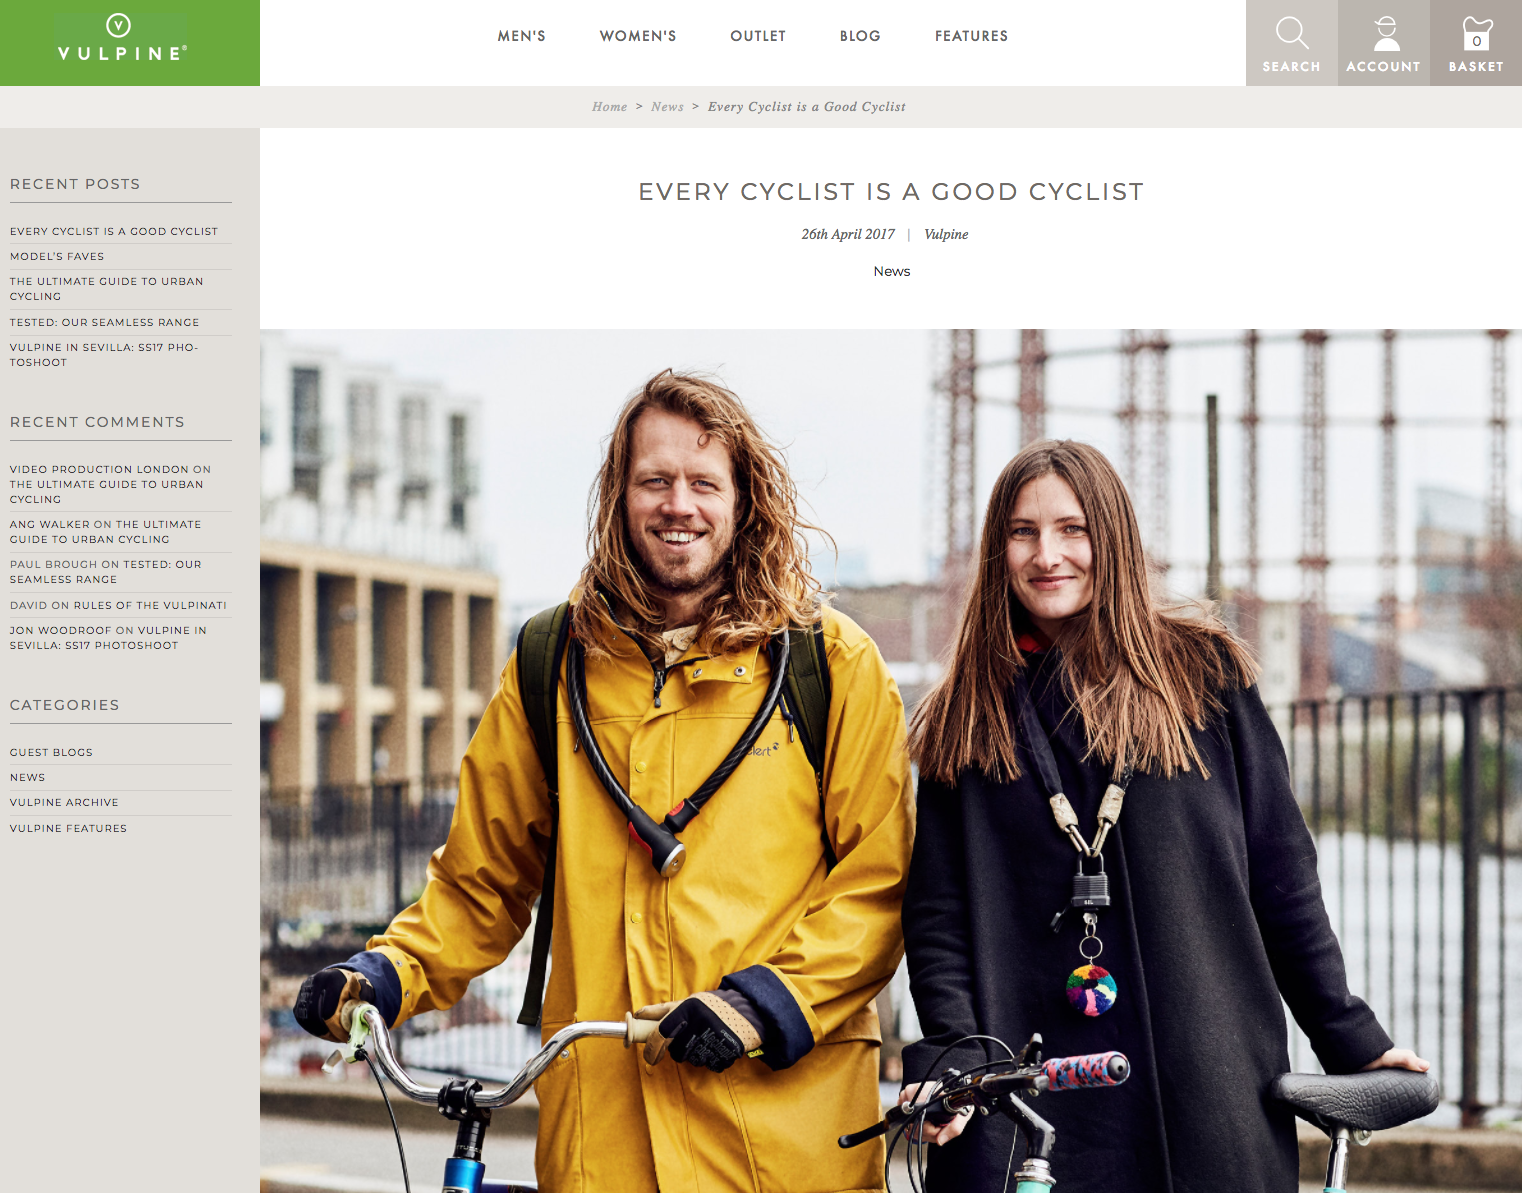 vulpine nick hussey cycling couple inclusive friendly urban marketing.jpg